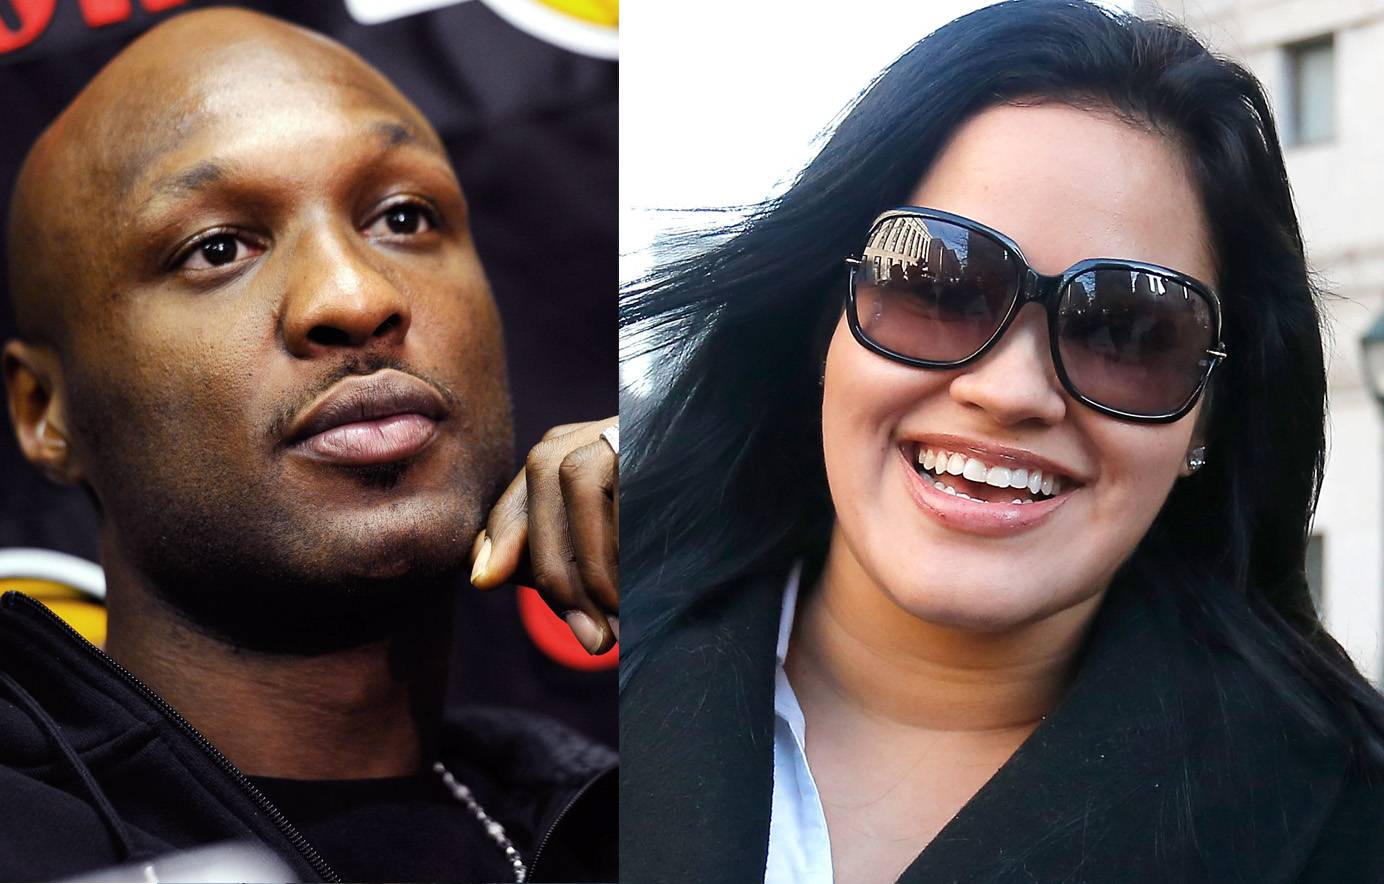 Lamar Odom and Liza Morales - Before he started keeping up with the Kardashians, Odom was married to Khloé look-a-like Liza Morales. The couple had been through tough times, including losing a child, but seemed to be on good terms once Odom moved on to the reality princess. When that marriage went kaput, Morales reached out to Odom to offer a shoulder to cry on and even helped him rebuild his relationship with their two children.(Photos from left: Kevork Djansezian/Getty Images, Jemal Countess/Getty Images)